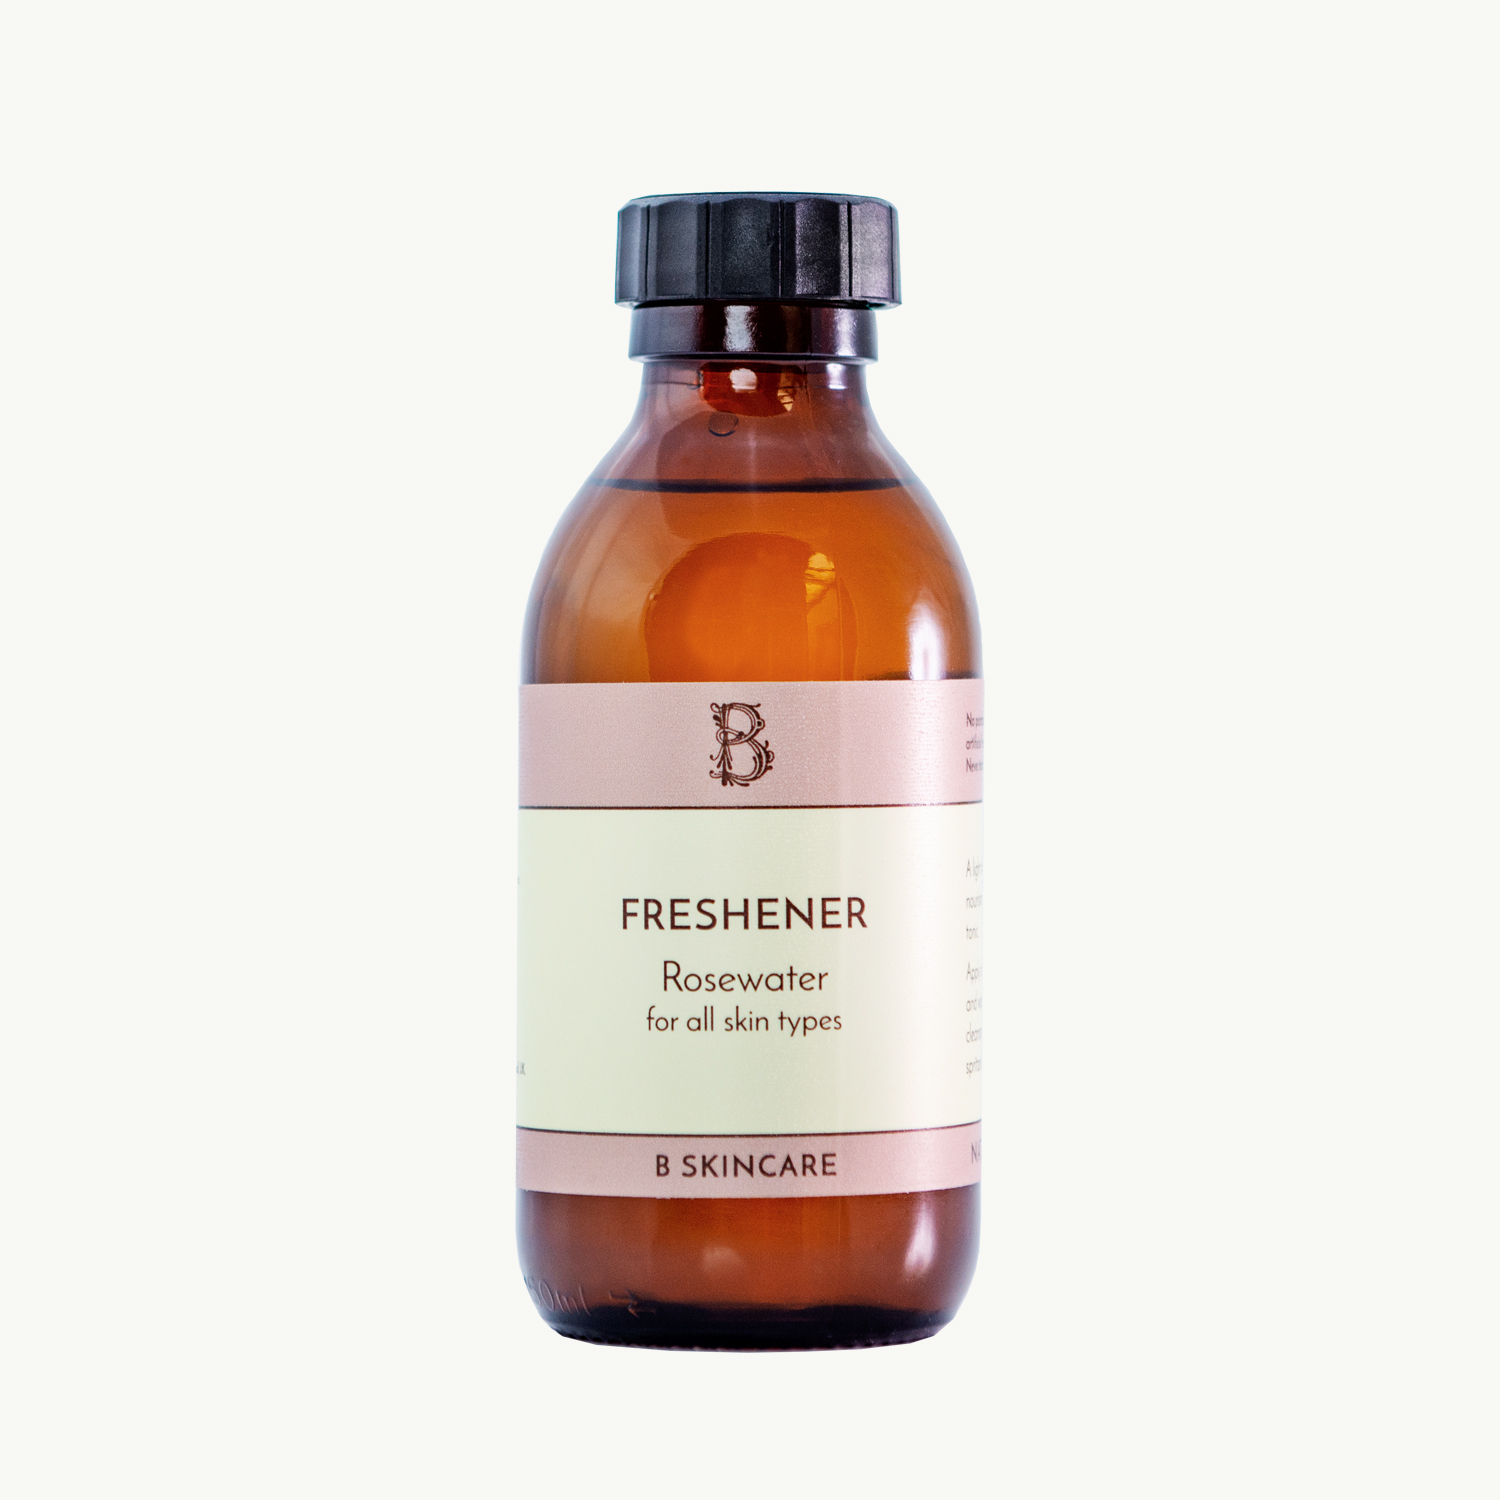 Rosewater Freshener with screw top